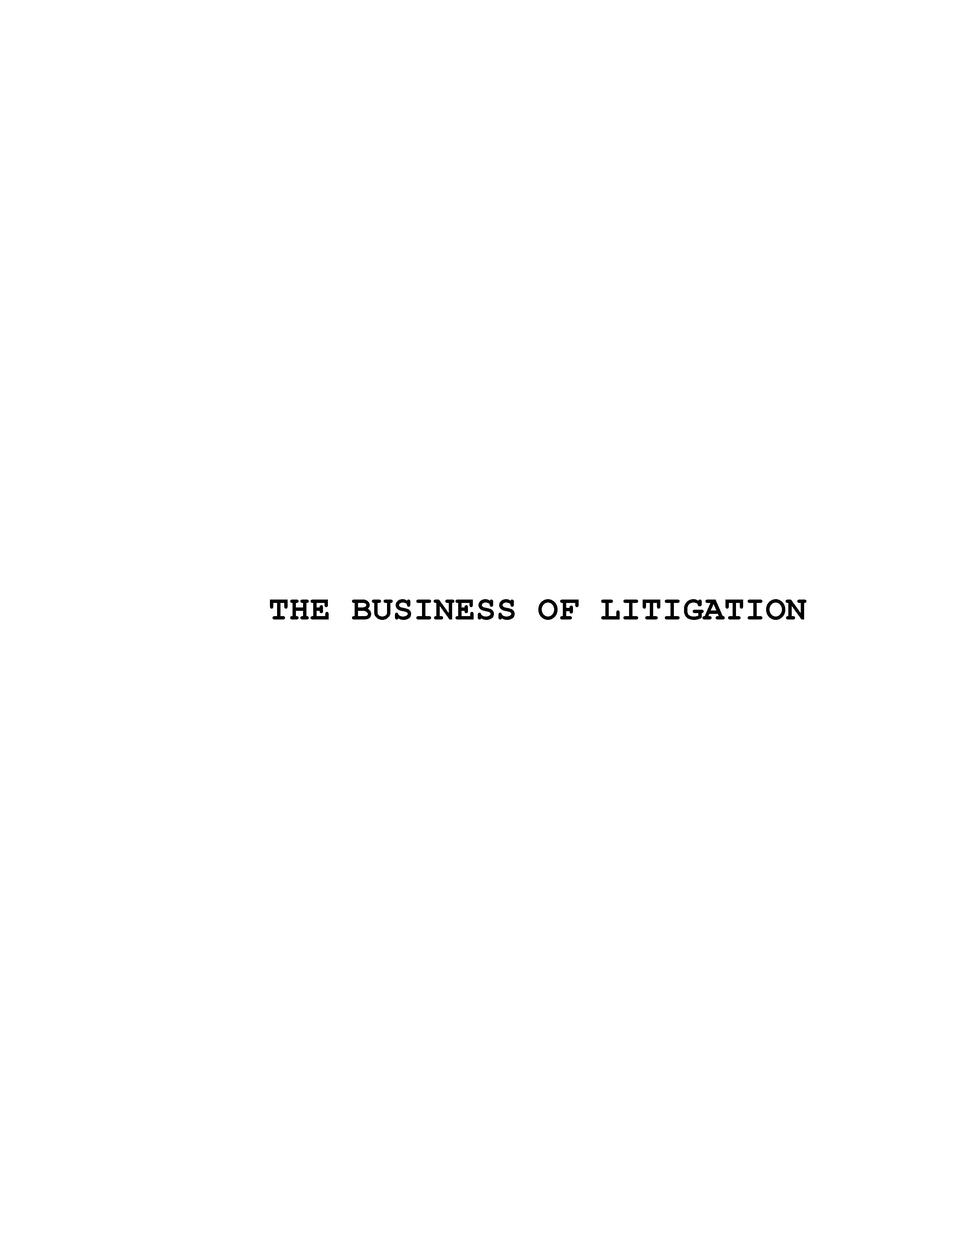 THE BUSINESS OF LITIGATION